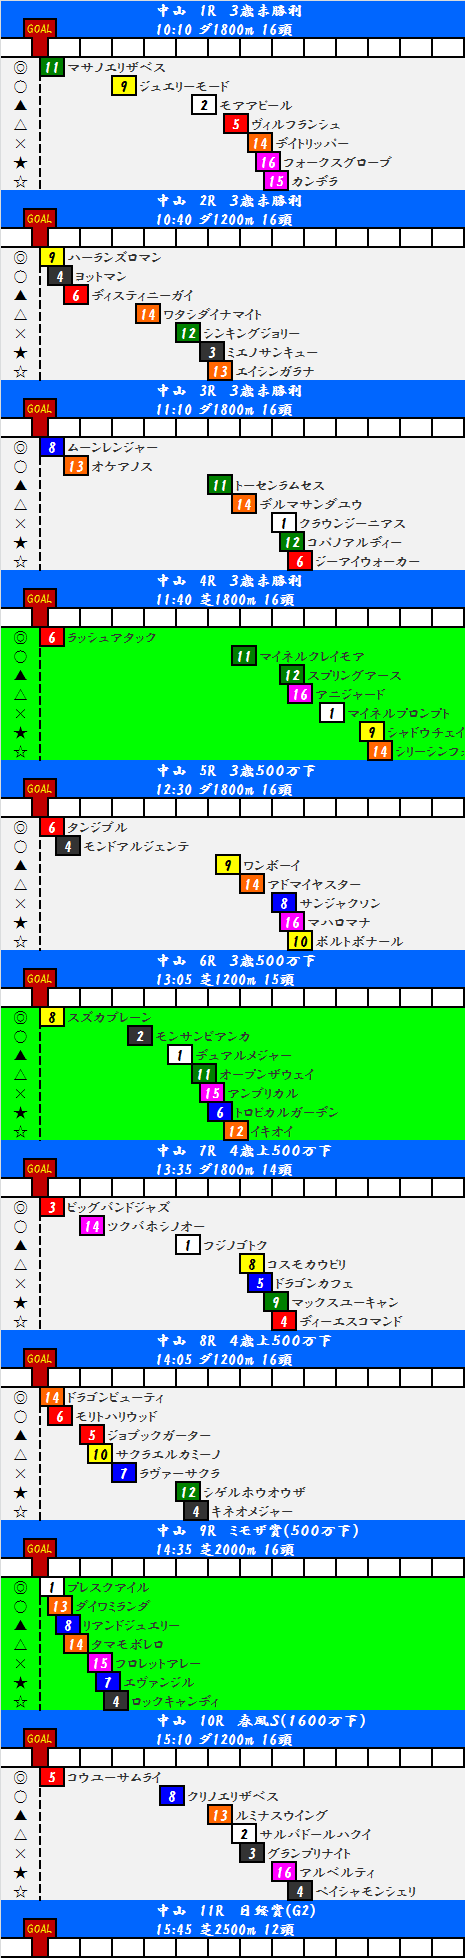 2015032801.png